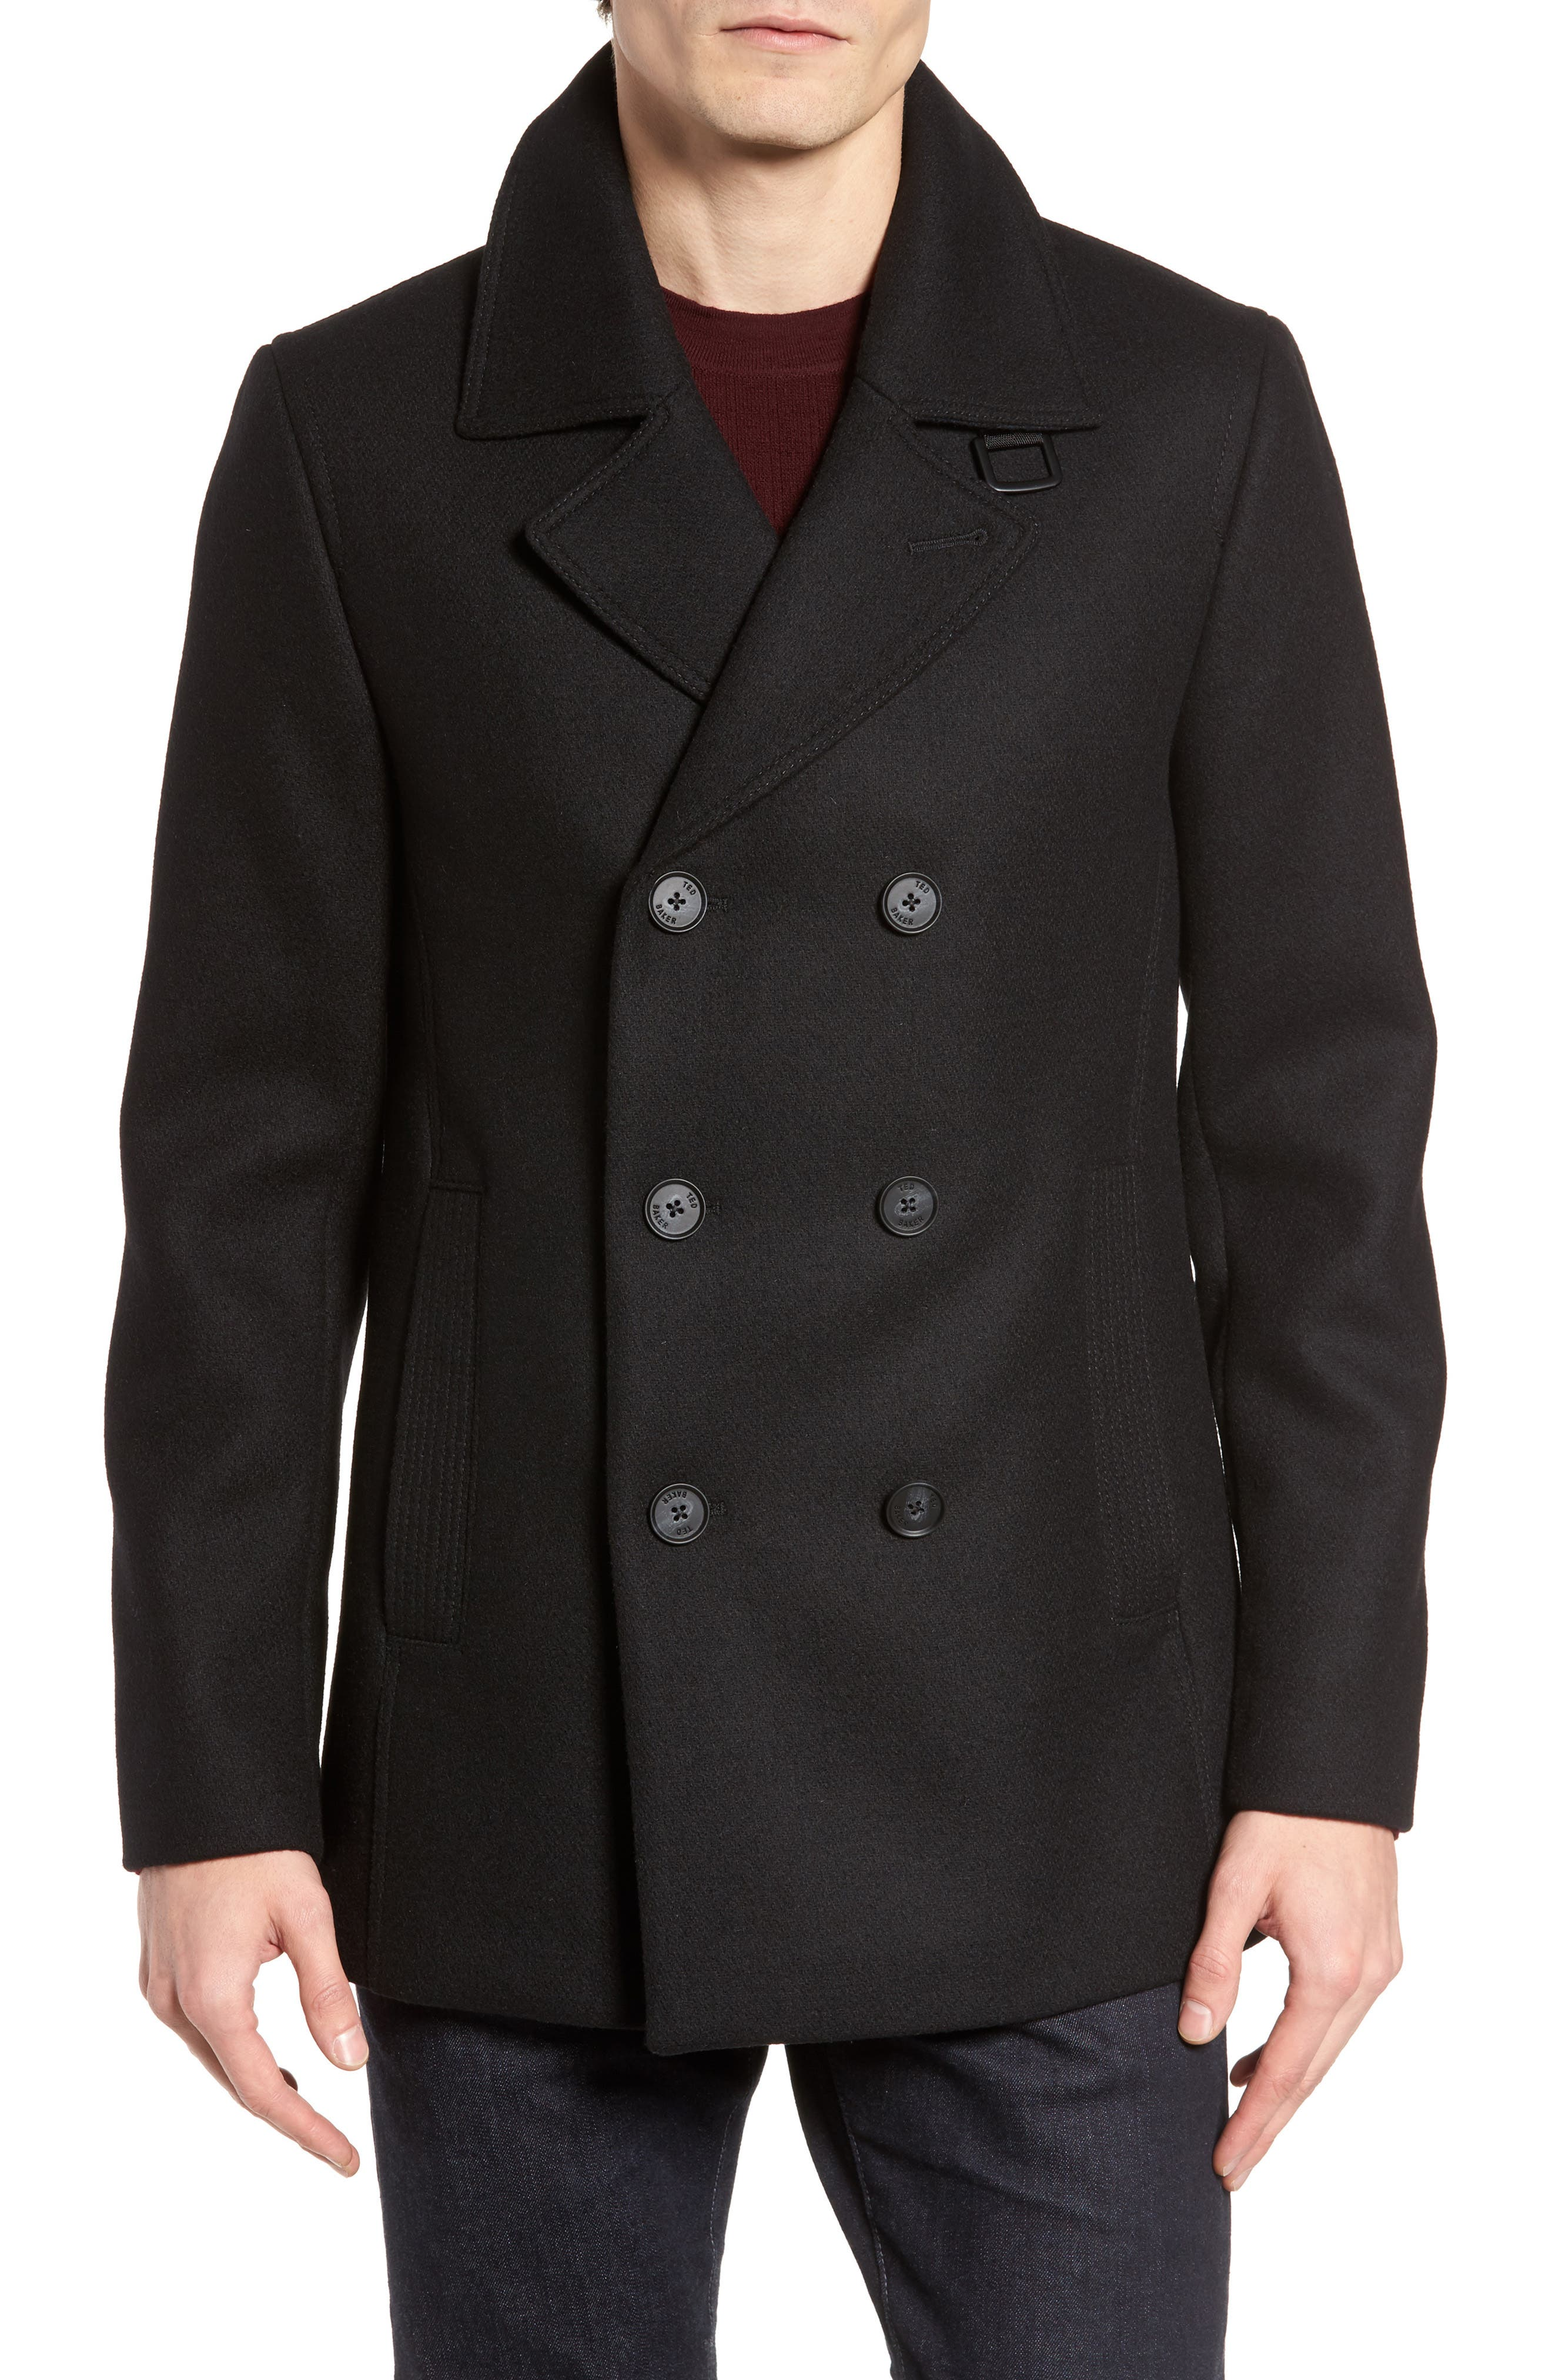 Zachary Trim Fit Double Breasted Peacoat,                         Main,                         color, Black